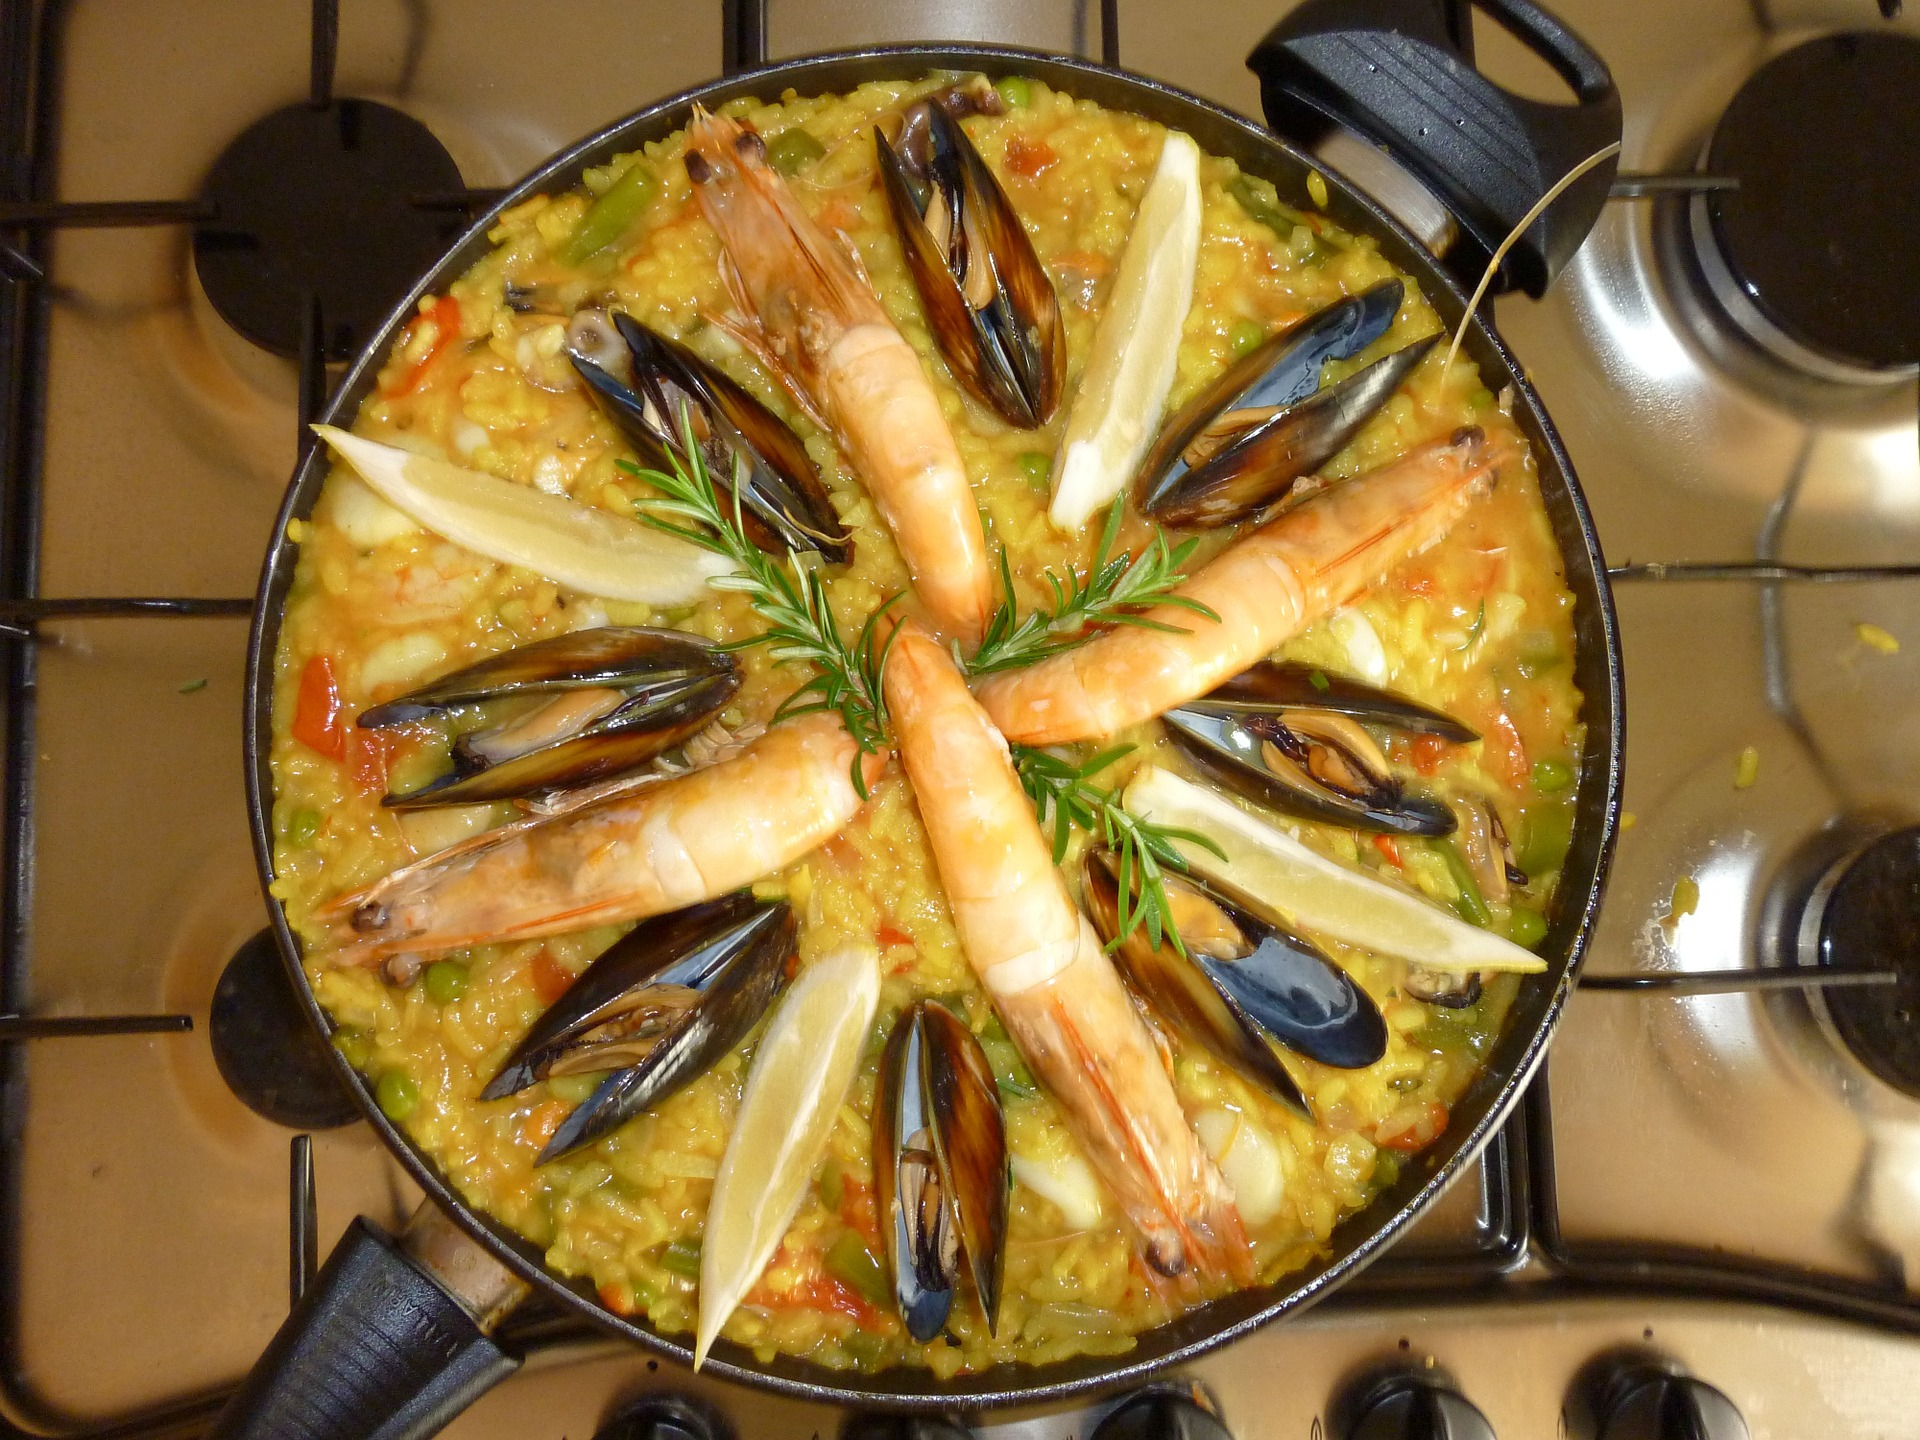 Country with The 3rd Most Instagrammable Food in the World: Spain - Paella (Photo Credit Pixabay: Skeeze)